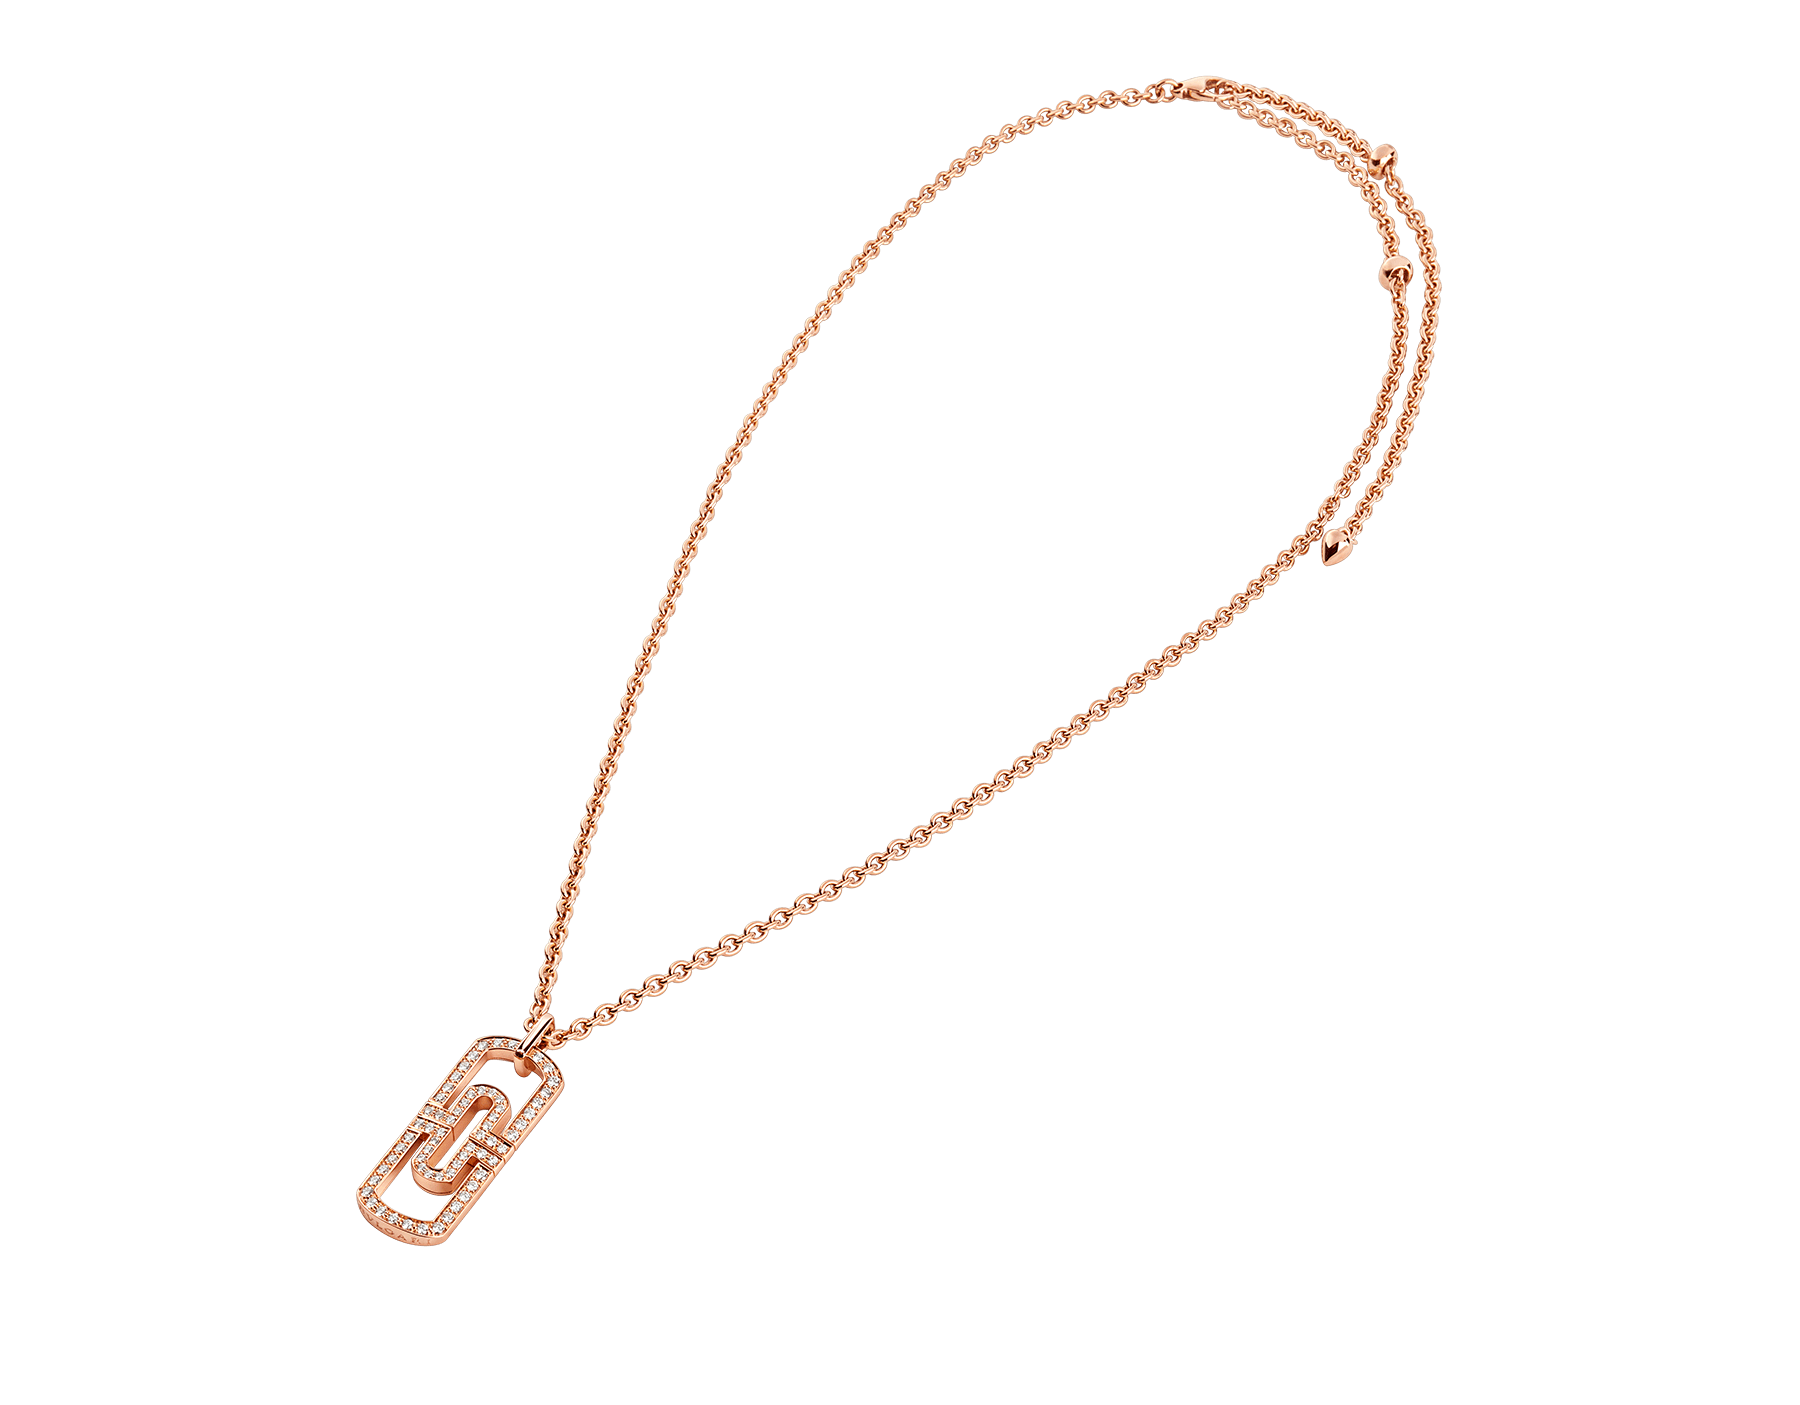 Parentesi necklace with 18 kt rose gold chain and 18 kt rose gold pendant set with full pavé diamonds 349184 image 2